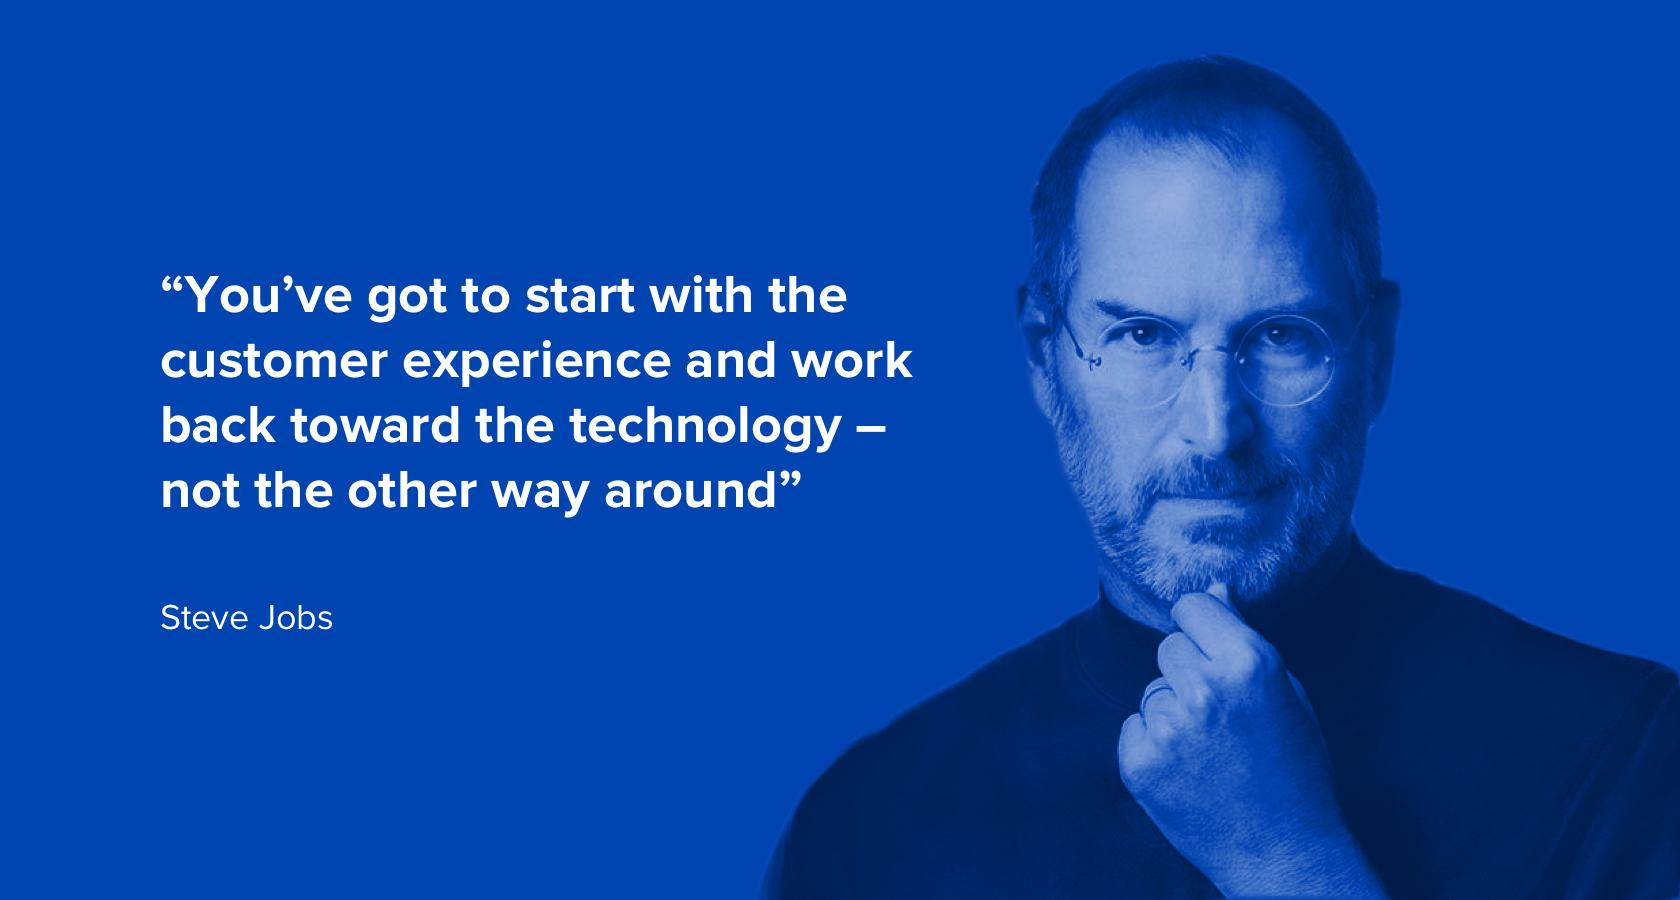 img alt tag: Quote by Steve Jobs on the importance of UX design